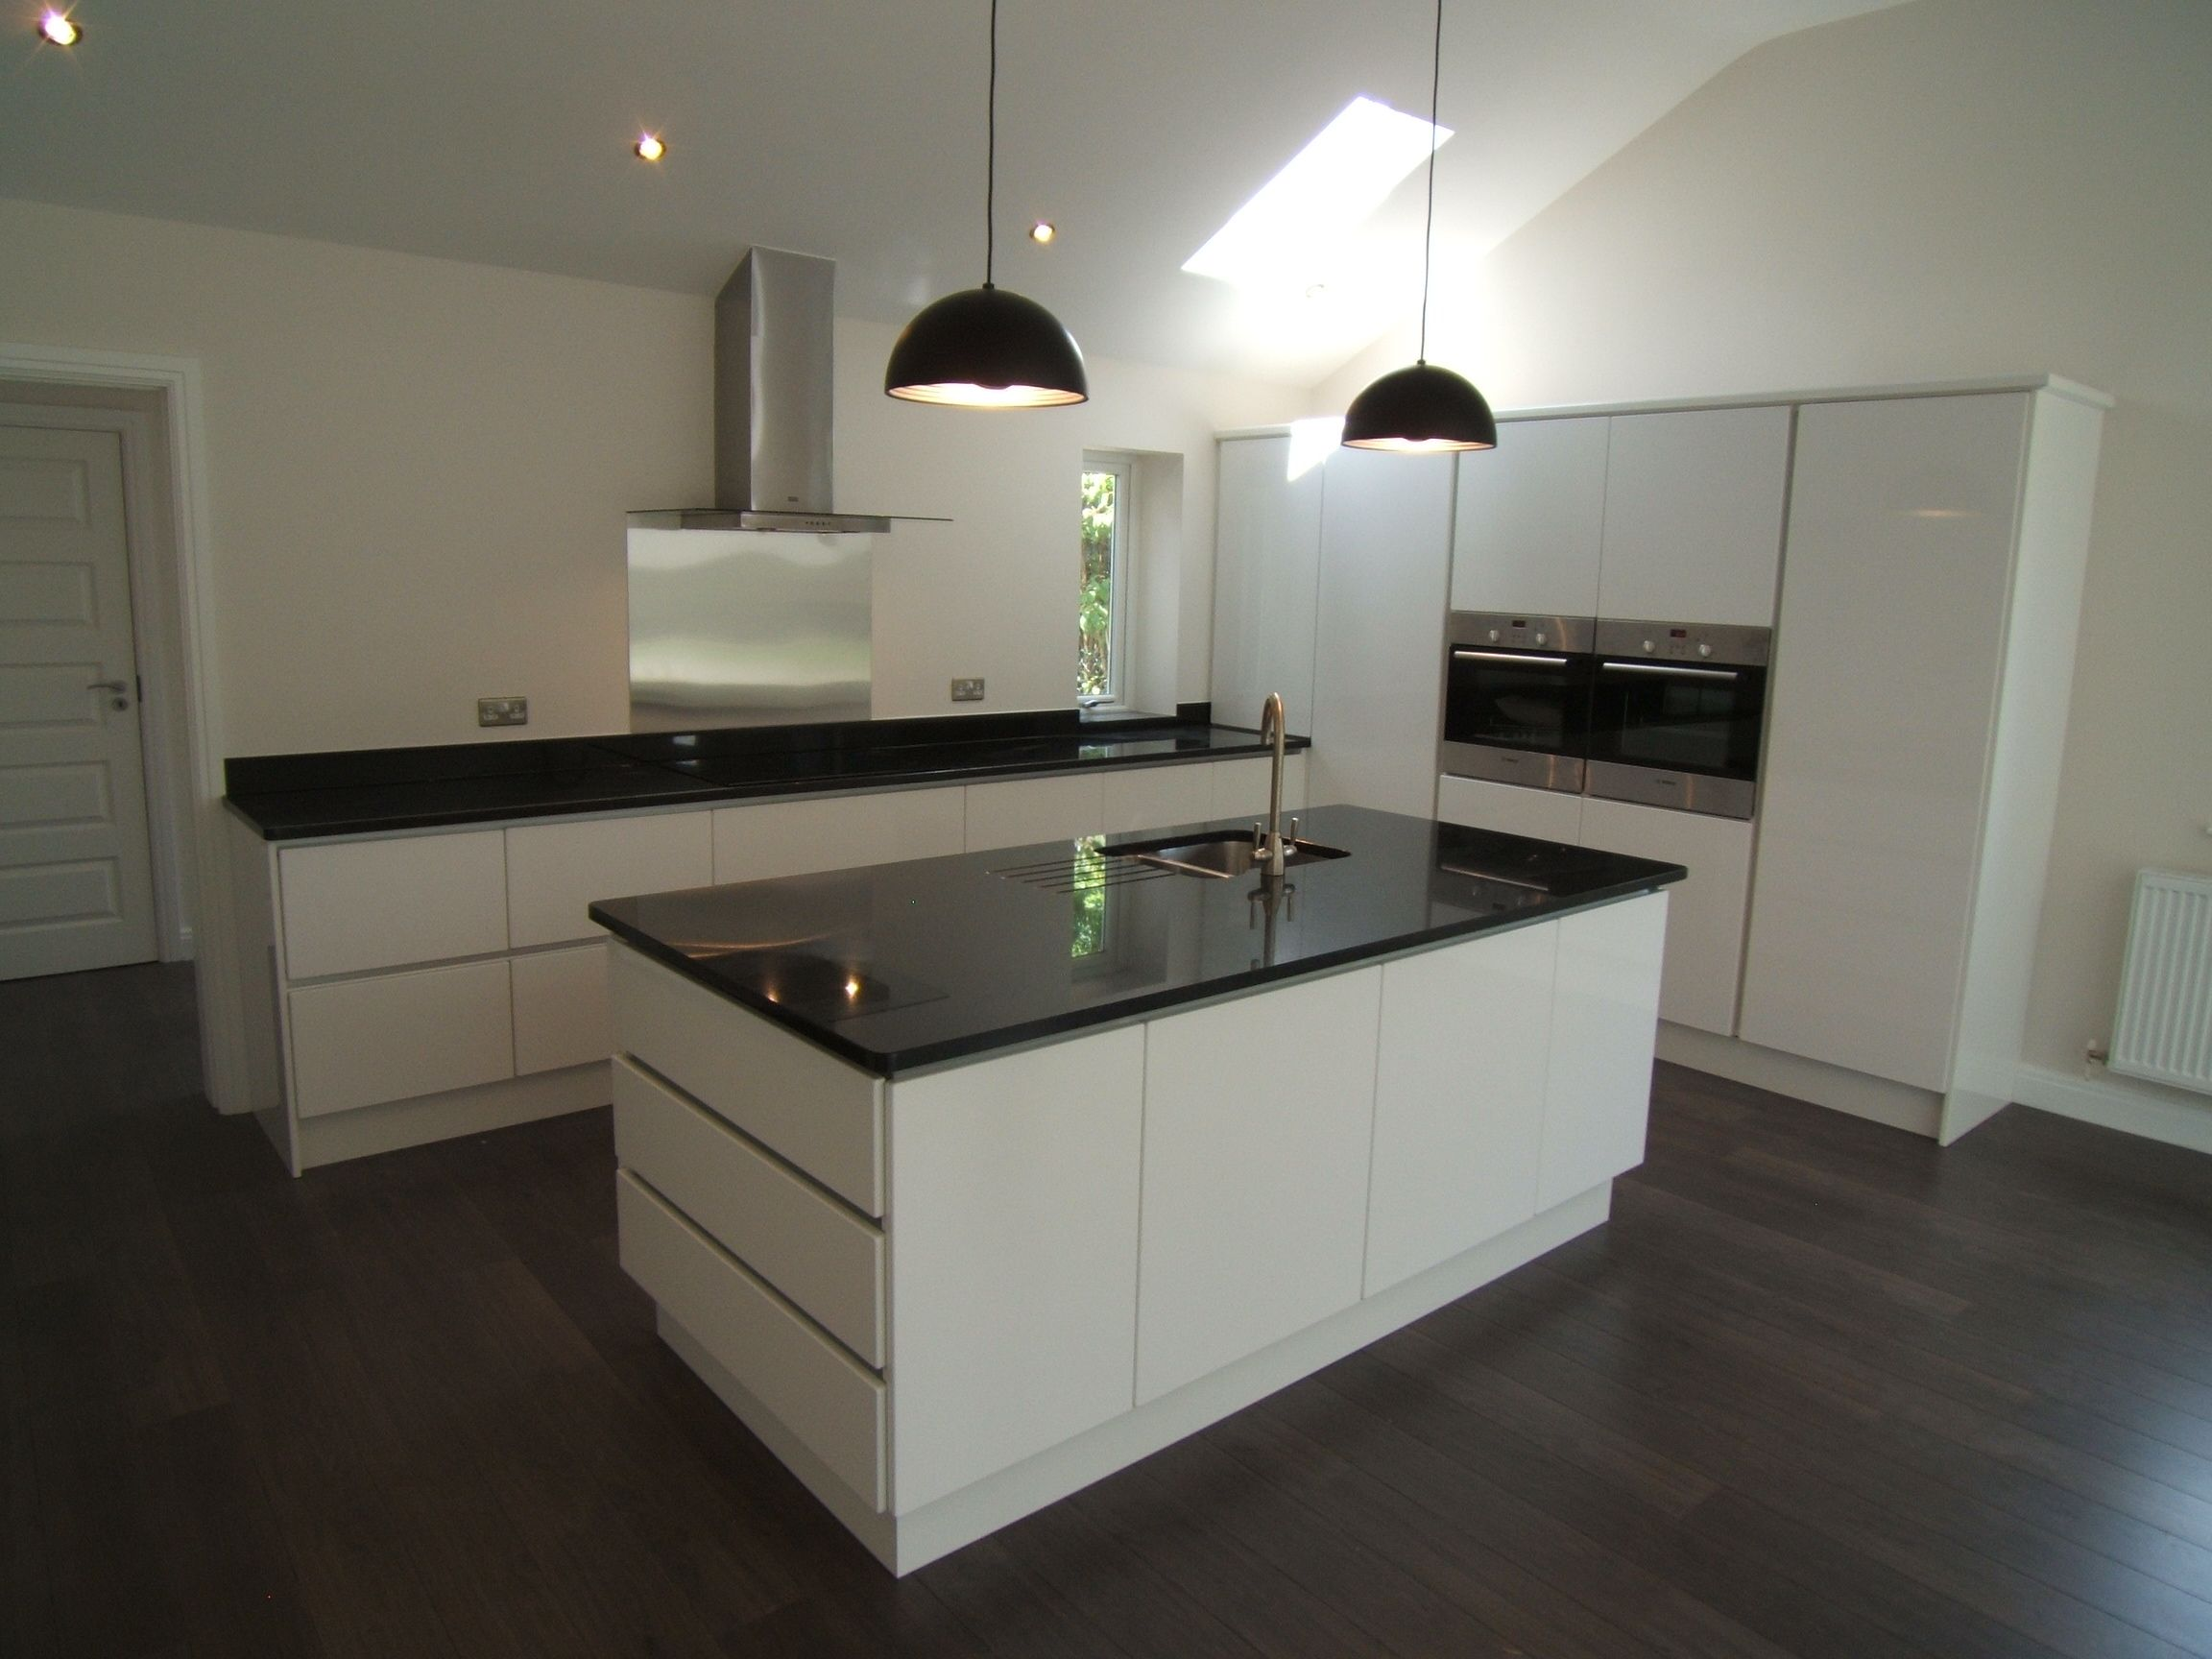 White Kitchen Units Black Worktop nerosupreme #granite on contemporary white handless kitchen units